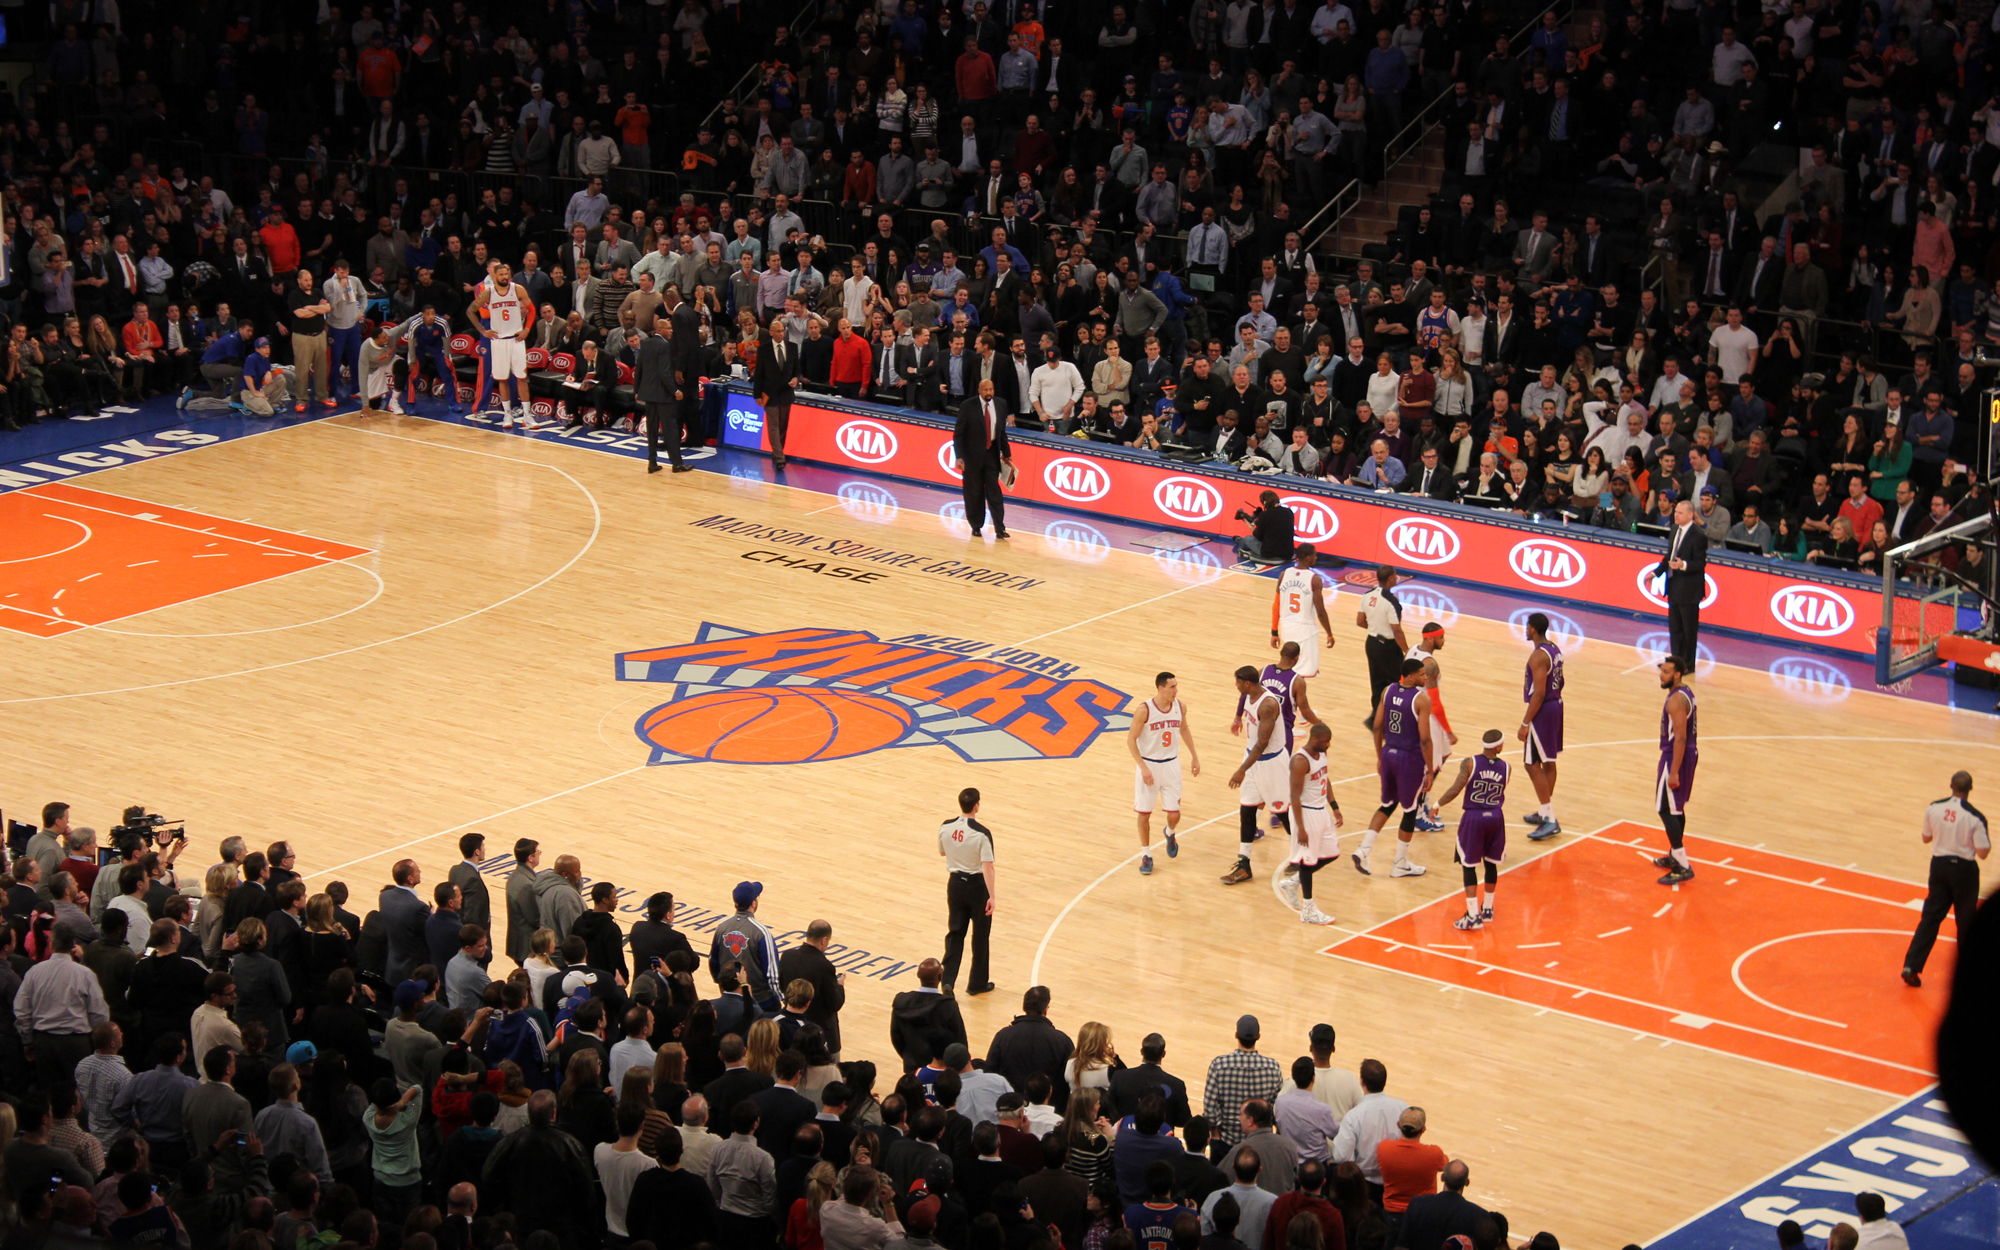 new_york_madison_square_gardens_new_york_knicks_basketball_photography_matthew_pomorski_graphic_designer